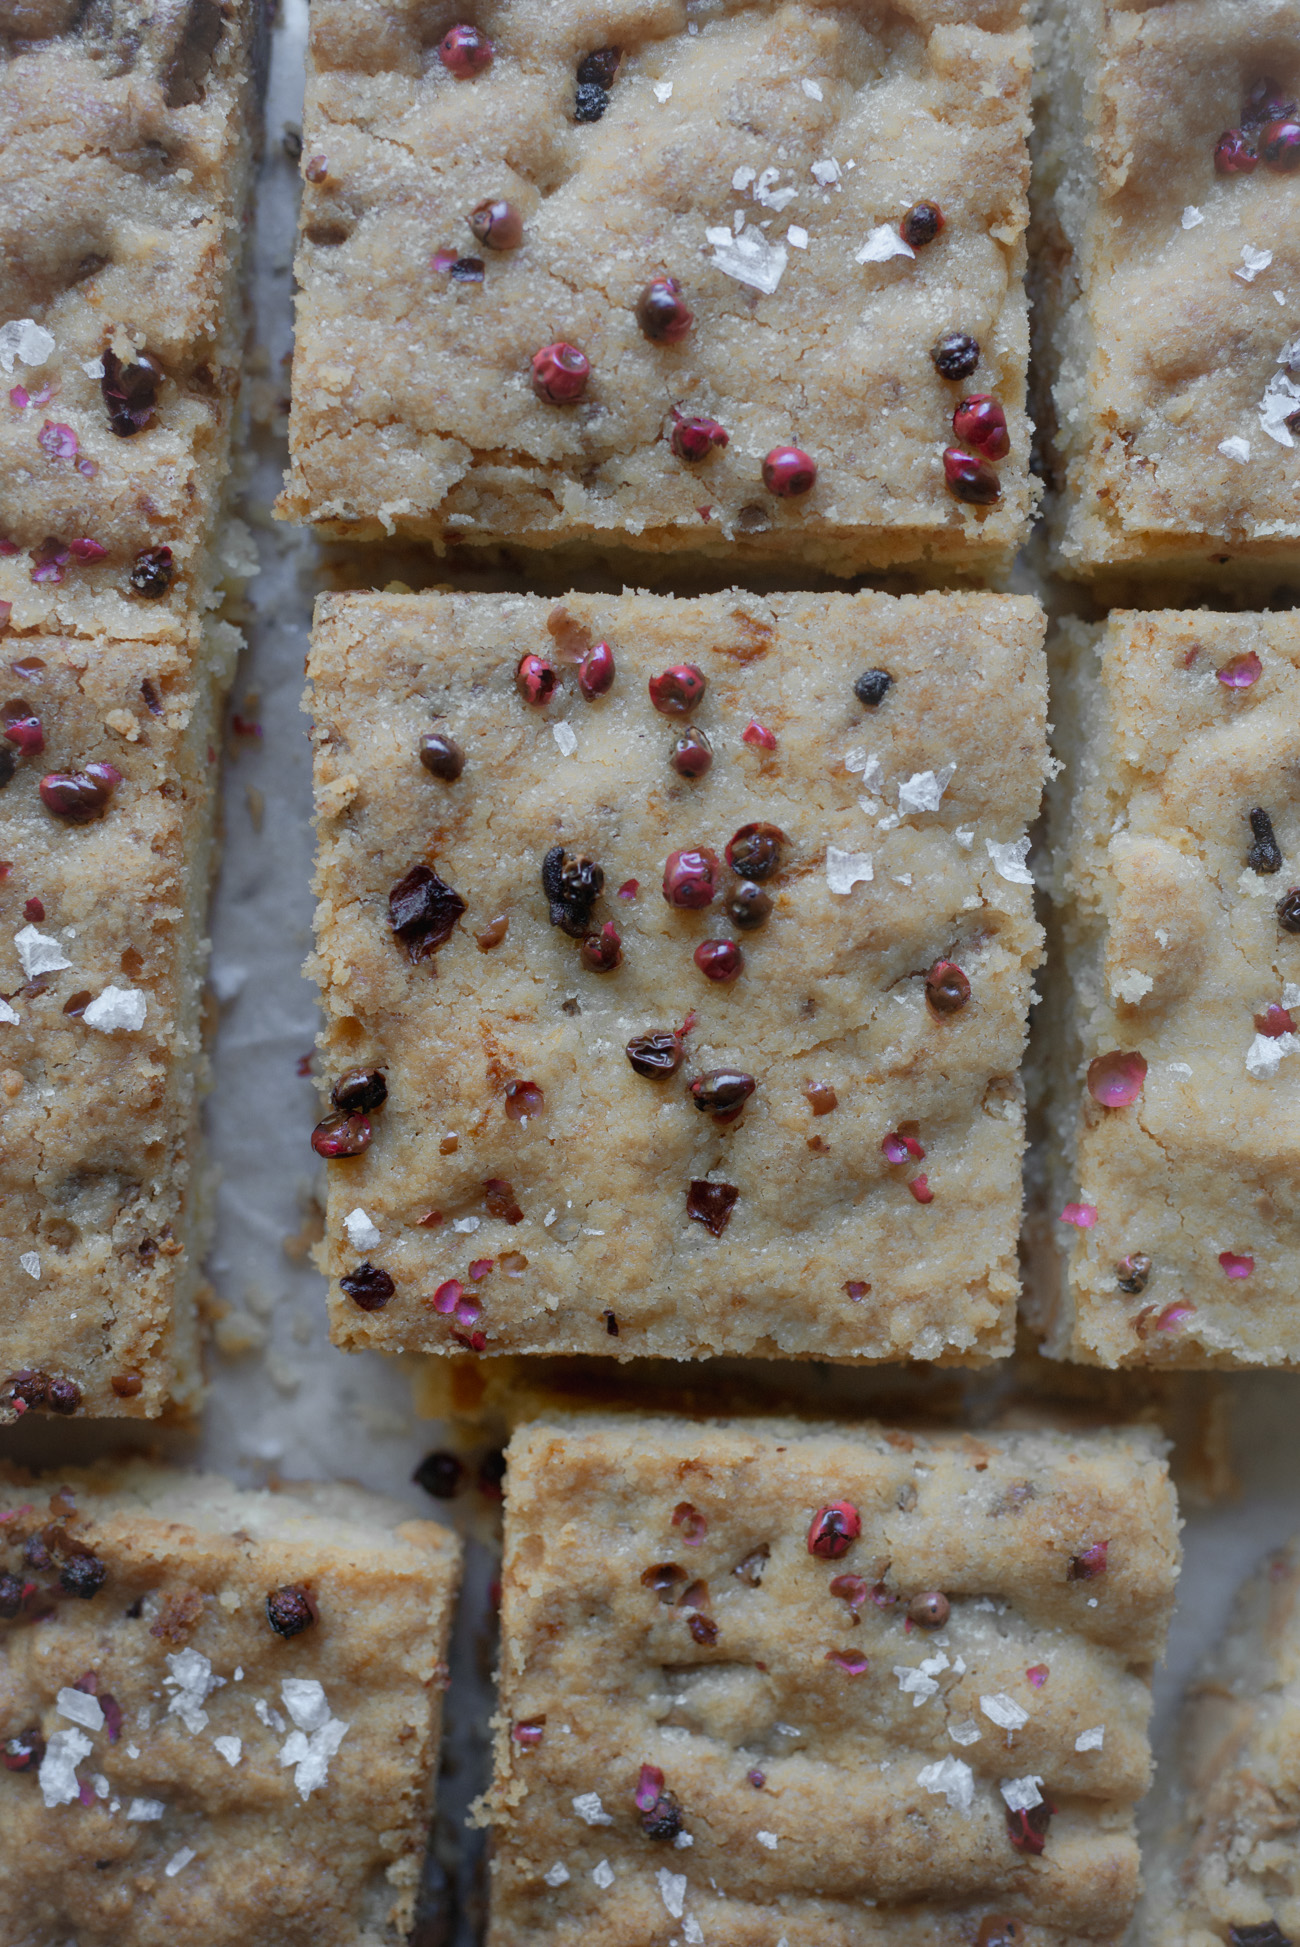 Lemon-Pink-Peppercorn-and-White-Chocolate-Shortbread-7-of-11.jpg